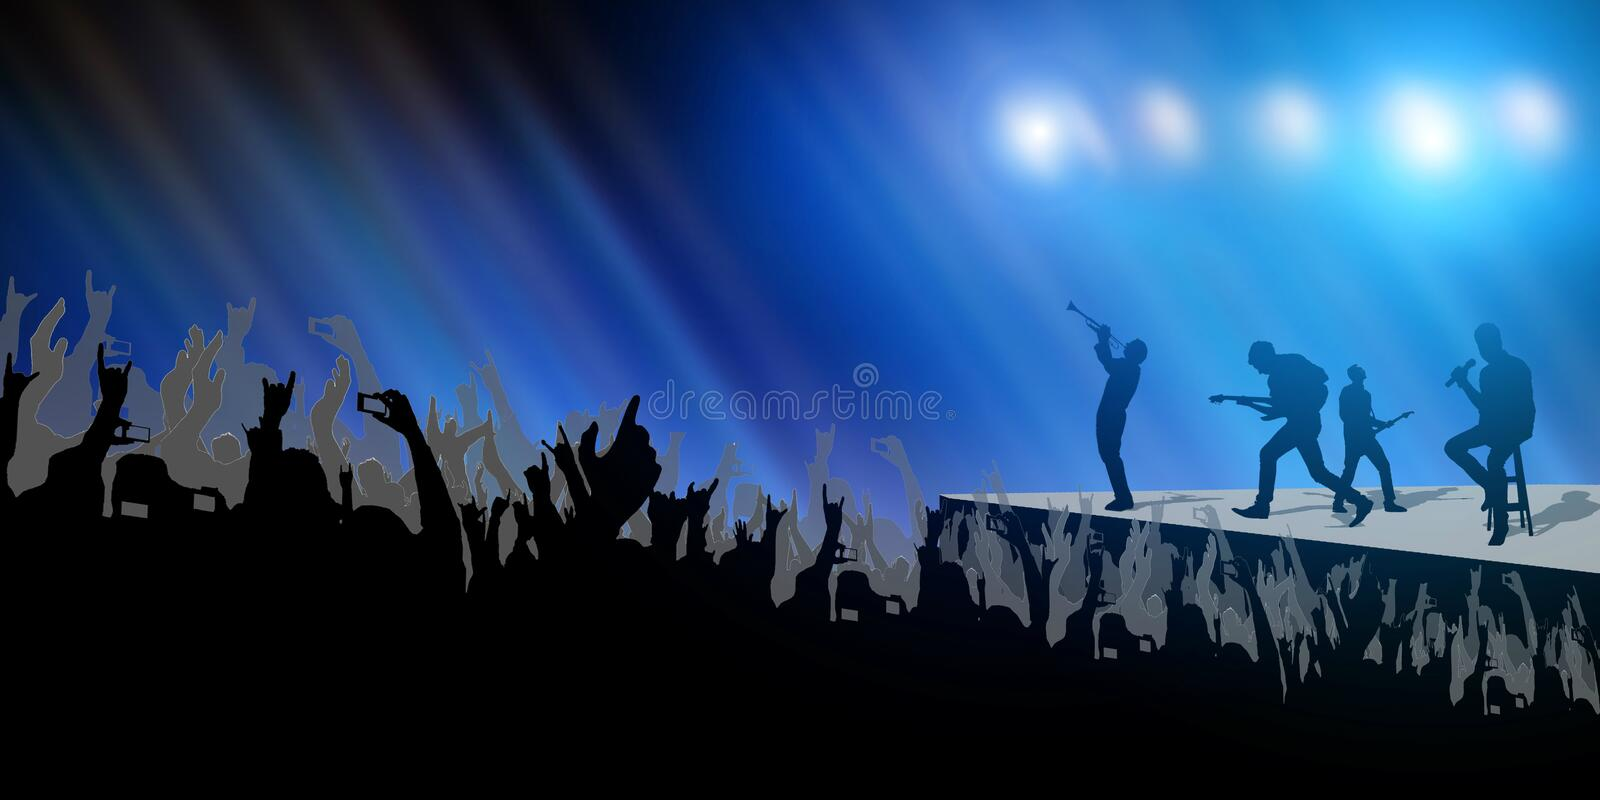 Concert Crowd Party and Music Band Festival Abstract on Light Blue Background royalty free illustration